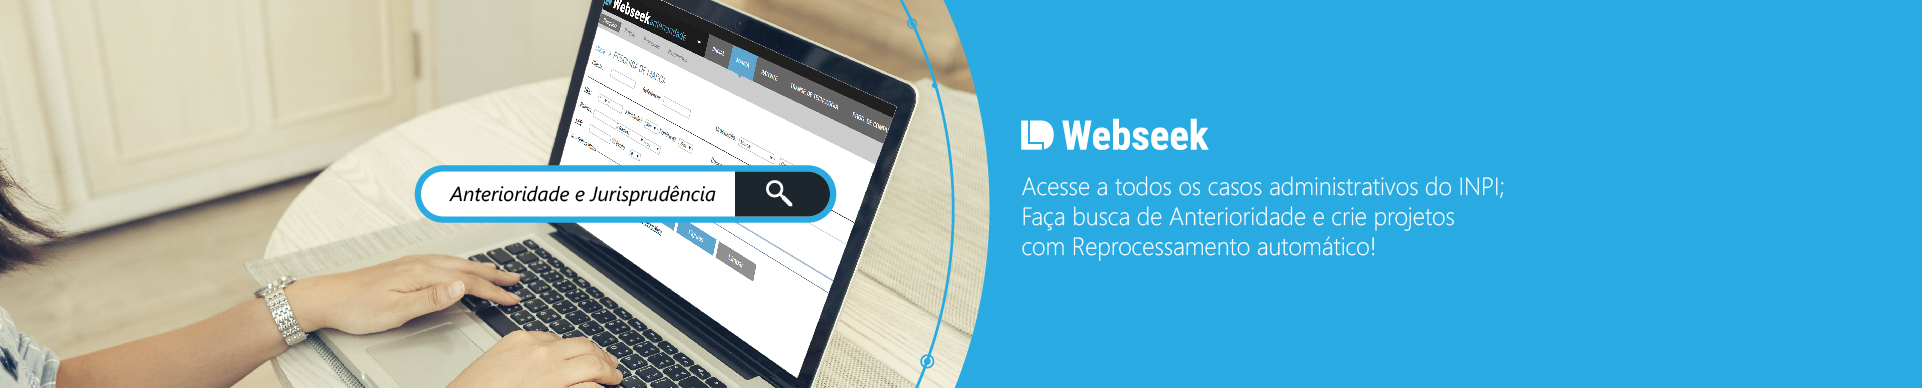 Webseek